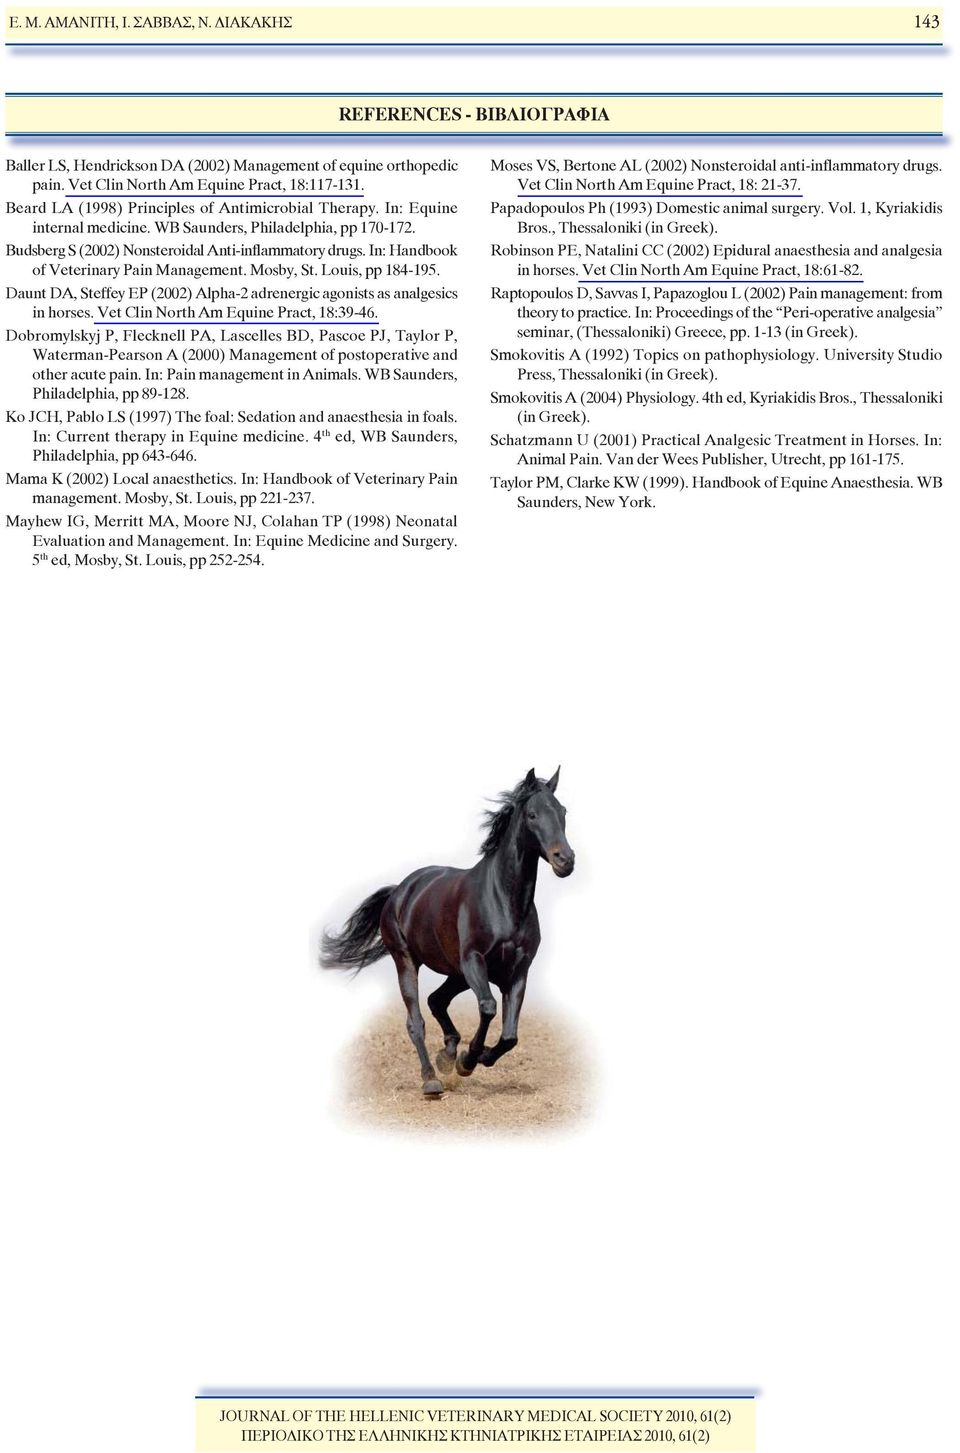 In: Handbook of Veterinary Pain Management. Mosby, St. Louis, pp 184-195. Daunt DA, Steffey EP (2002) Alpha-2 adrenergic agonists as analgesics in horses. Vet Clin North Am Equine Pract, 18:39-46.